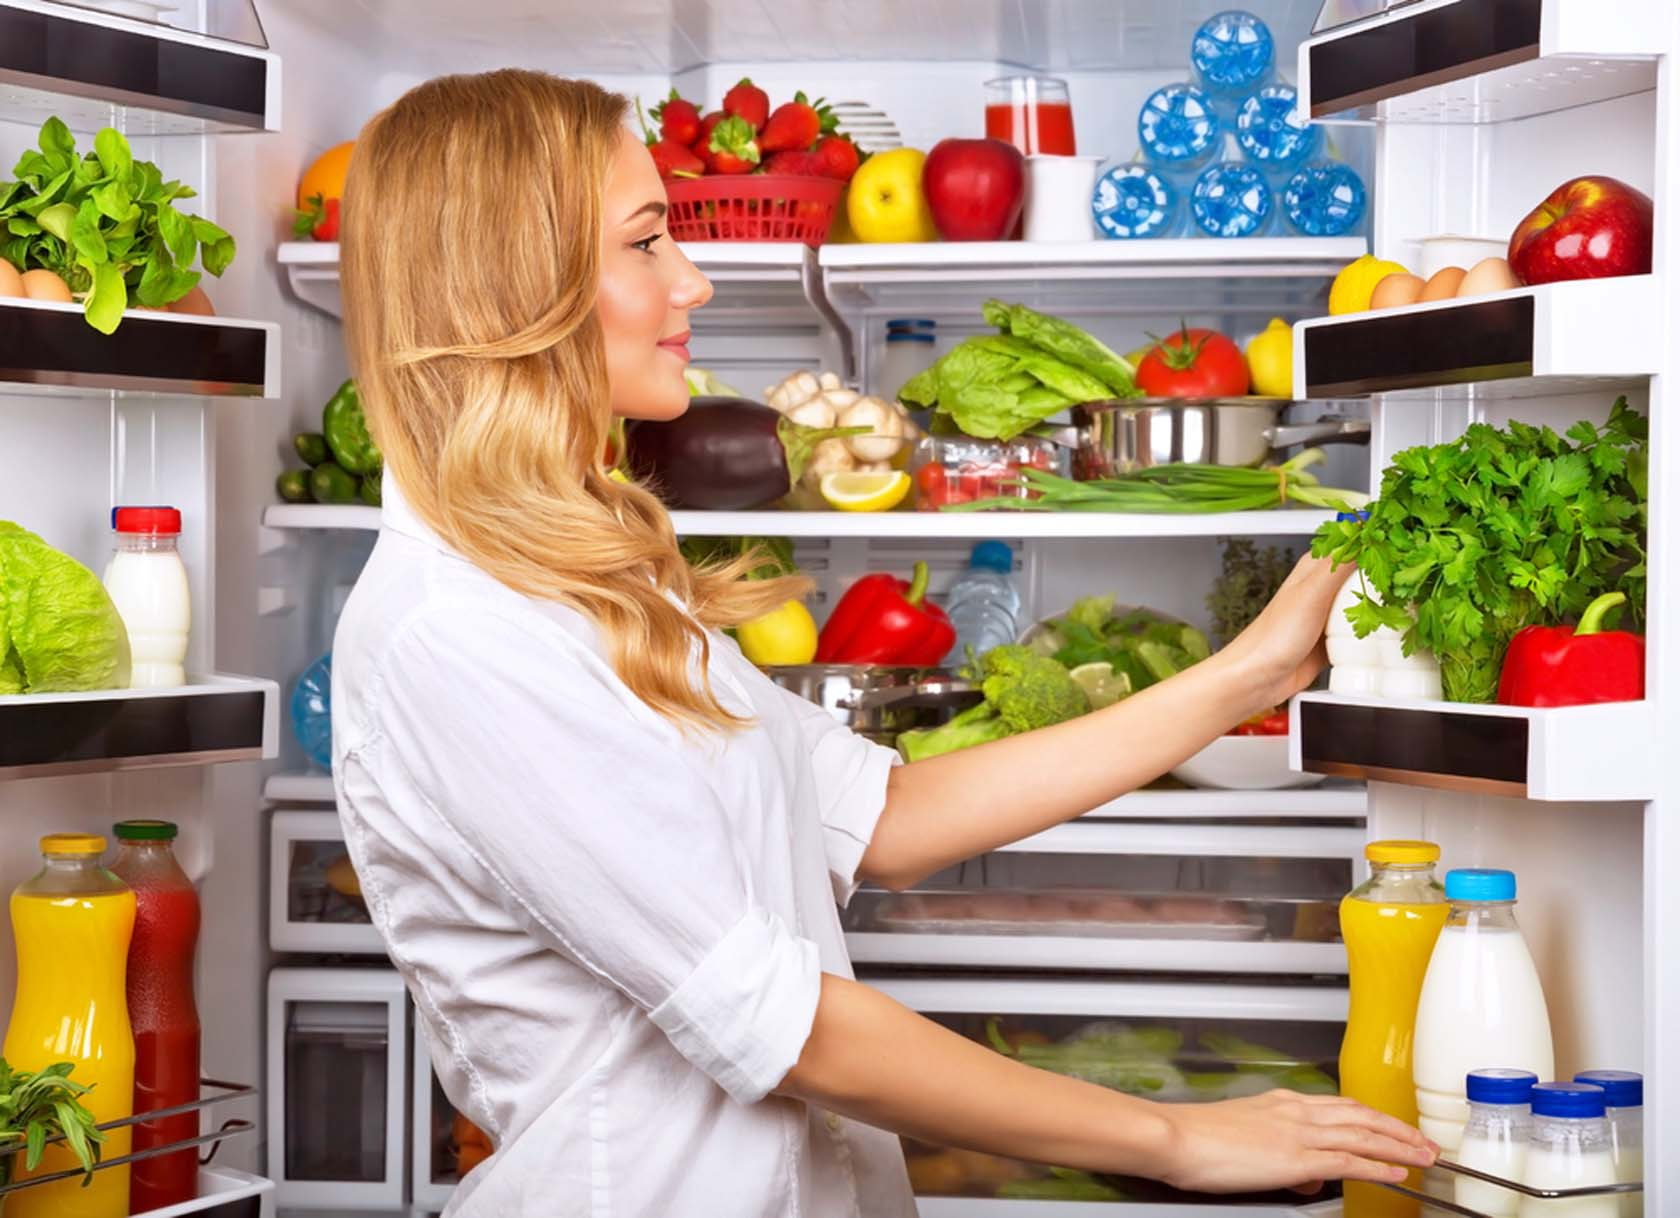 Stock Your Kitchen With Healthy And Nutritious Foods